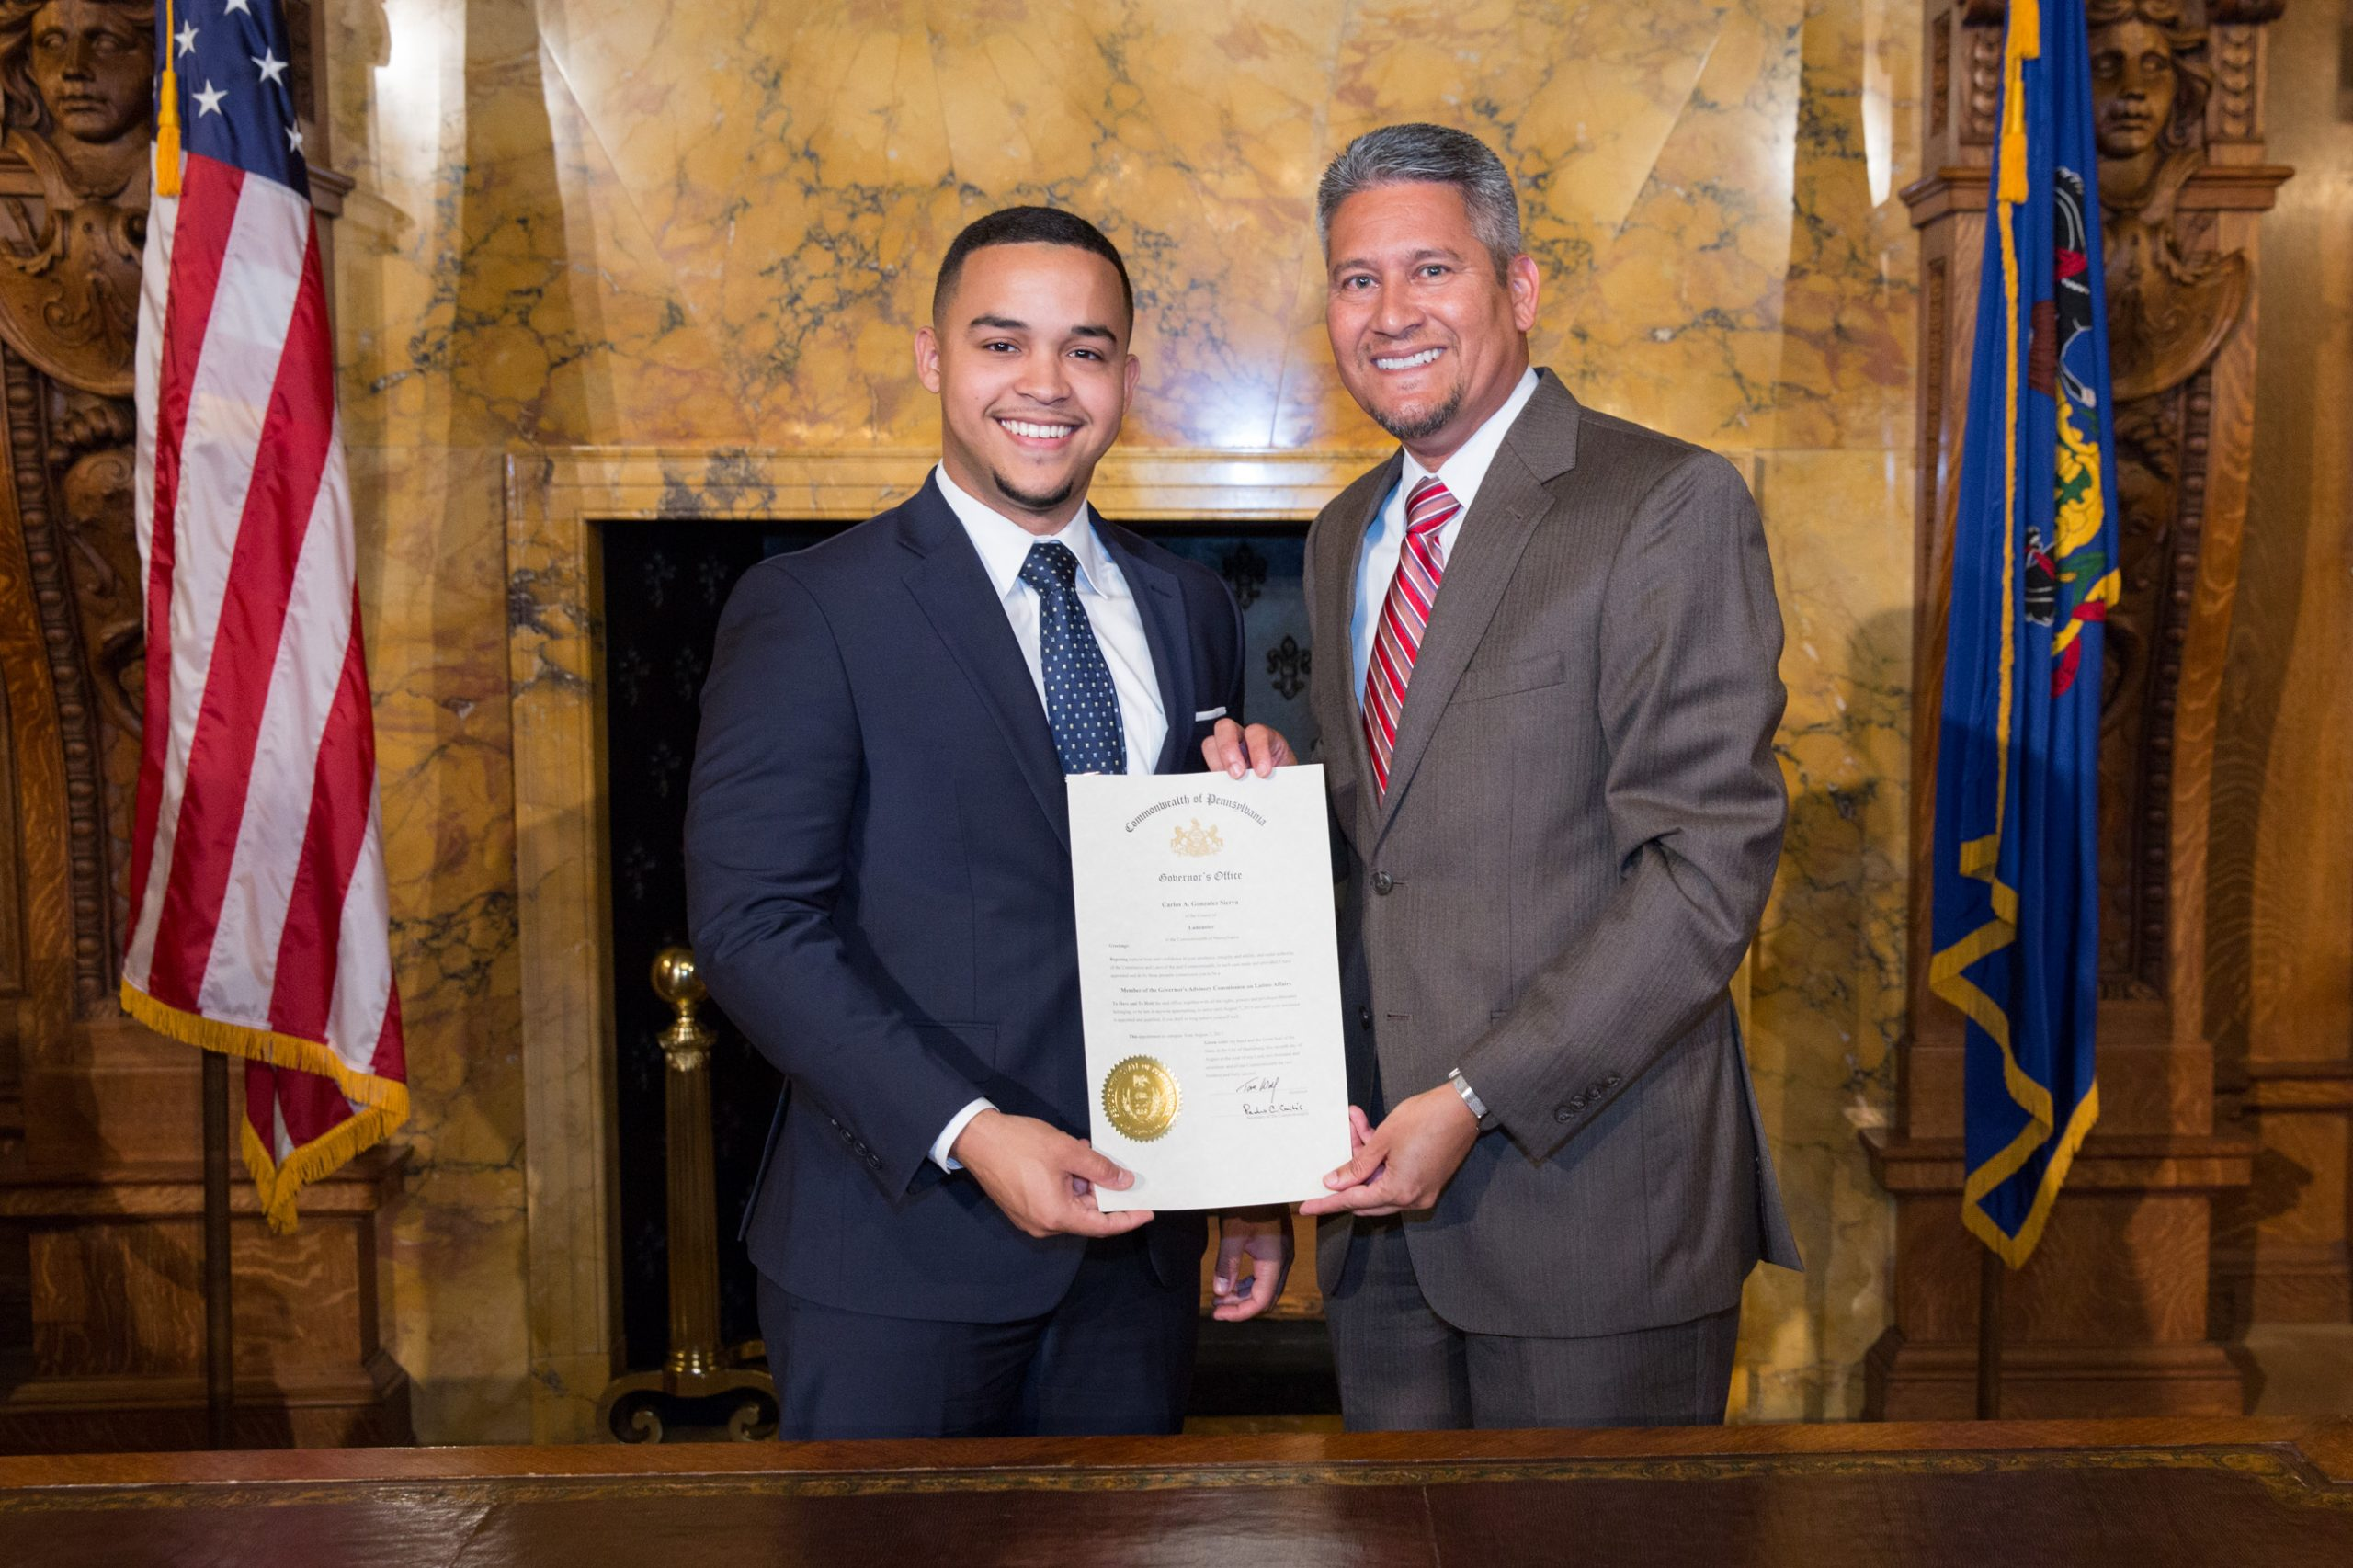 Scholar appointed to Latino Affairs commission